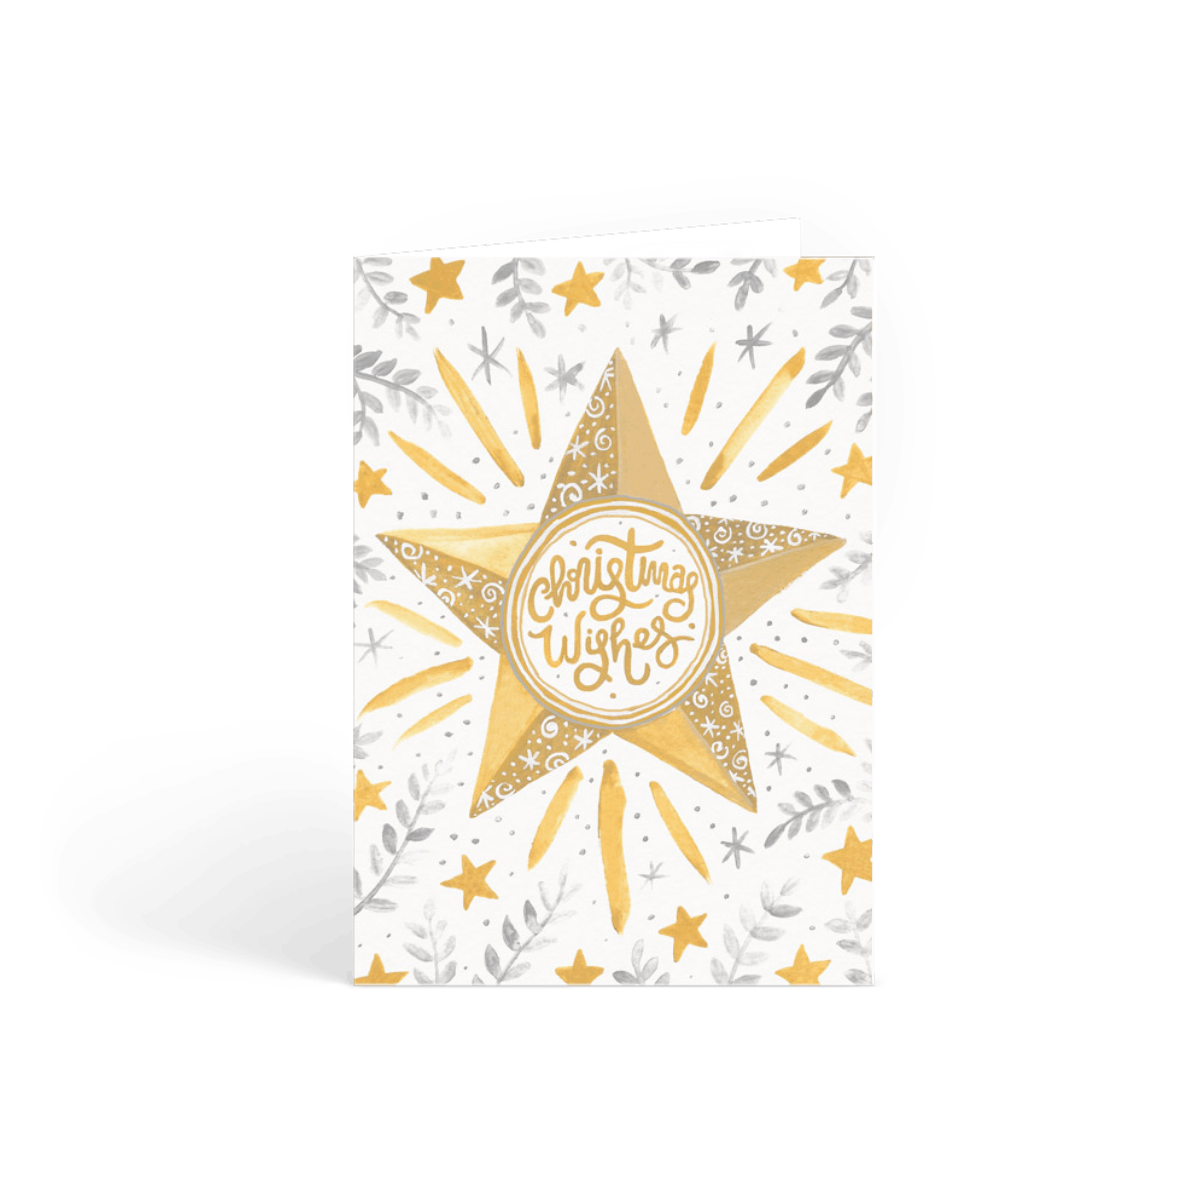 Https%3a%2f%2fwww.papier.com%2fproduct image%2f24900%2f2%2fchristmas star 6211 front 1542210192.png?ixlib=rb 1.1